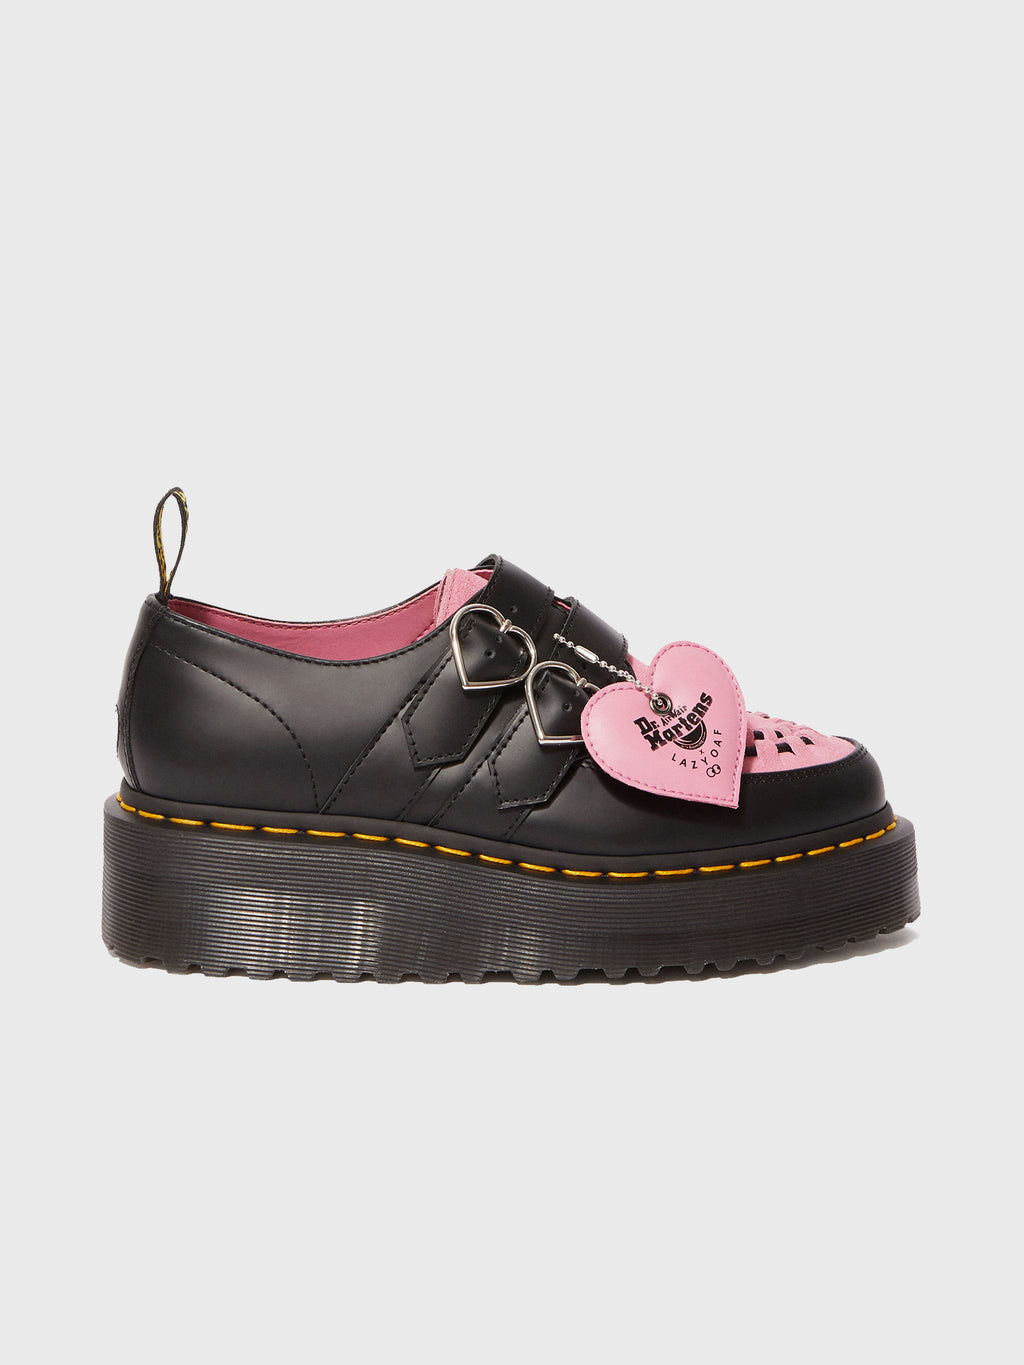 a461d62a3dc Dr. Martens x Lazy Oaf Rose Buckle Creeper